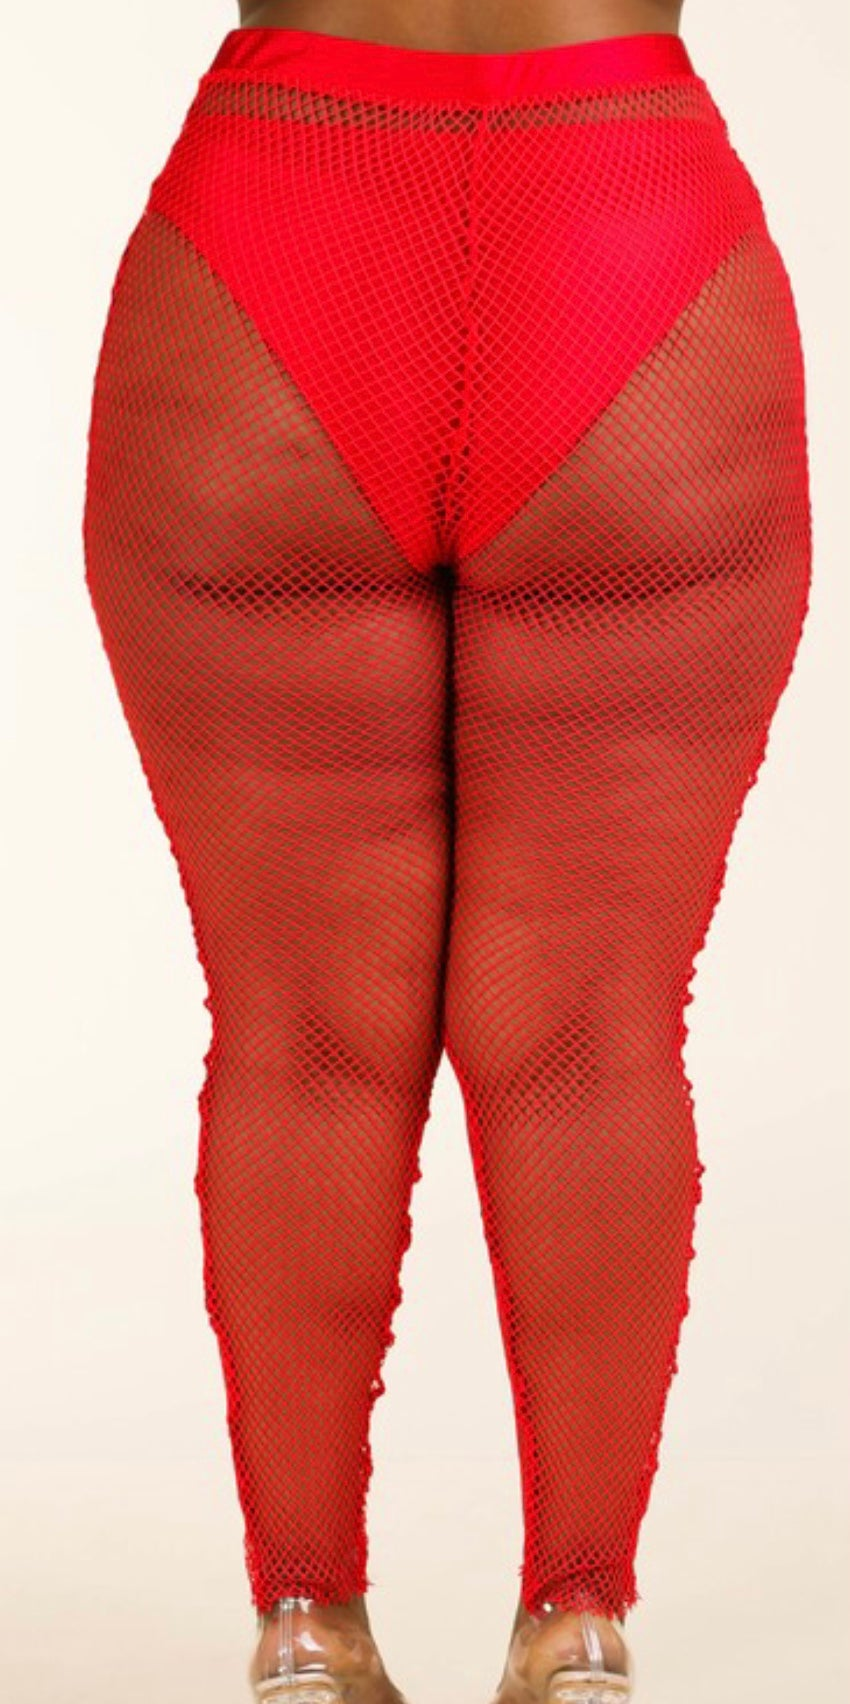 RED PLUS SIZE PANTY LINED MESH LEGGINGS